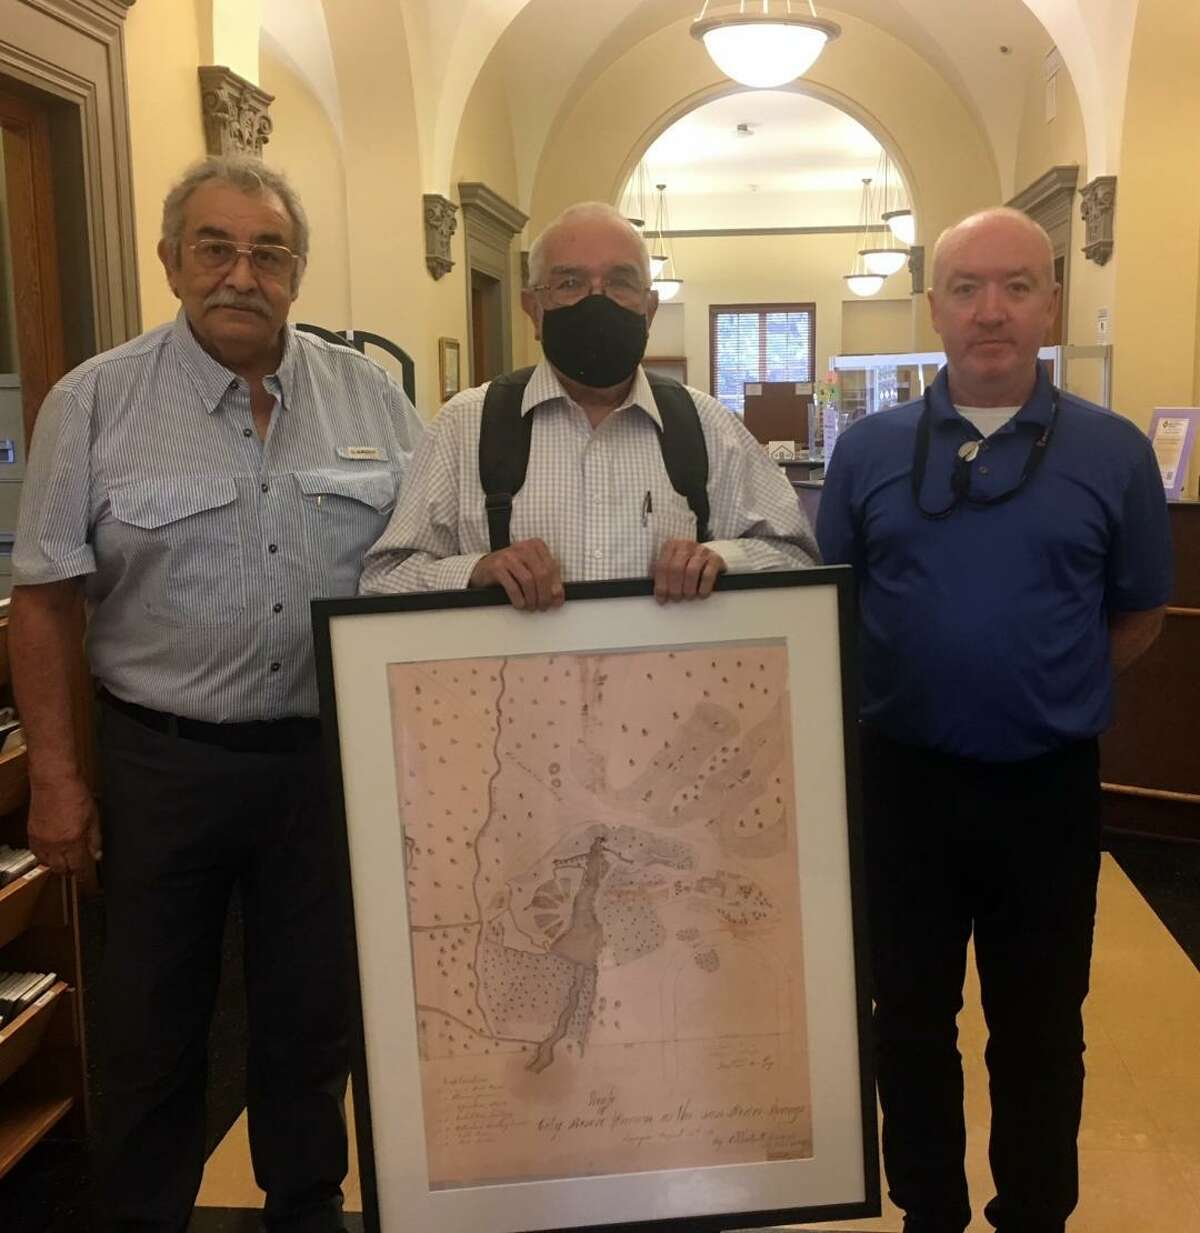 Friends of the San Pedro Springs Park President Hector J. Cardenas, left, and local historian Ed Gaida, center, who gave a recent presentation on the park's history, including the zoo, donate a copy of a rare 1871 map of the park to San Pedro Branch Library Manager Nathaniel Laubner, right. The map will be displayed at the entrance to the library.